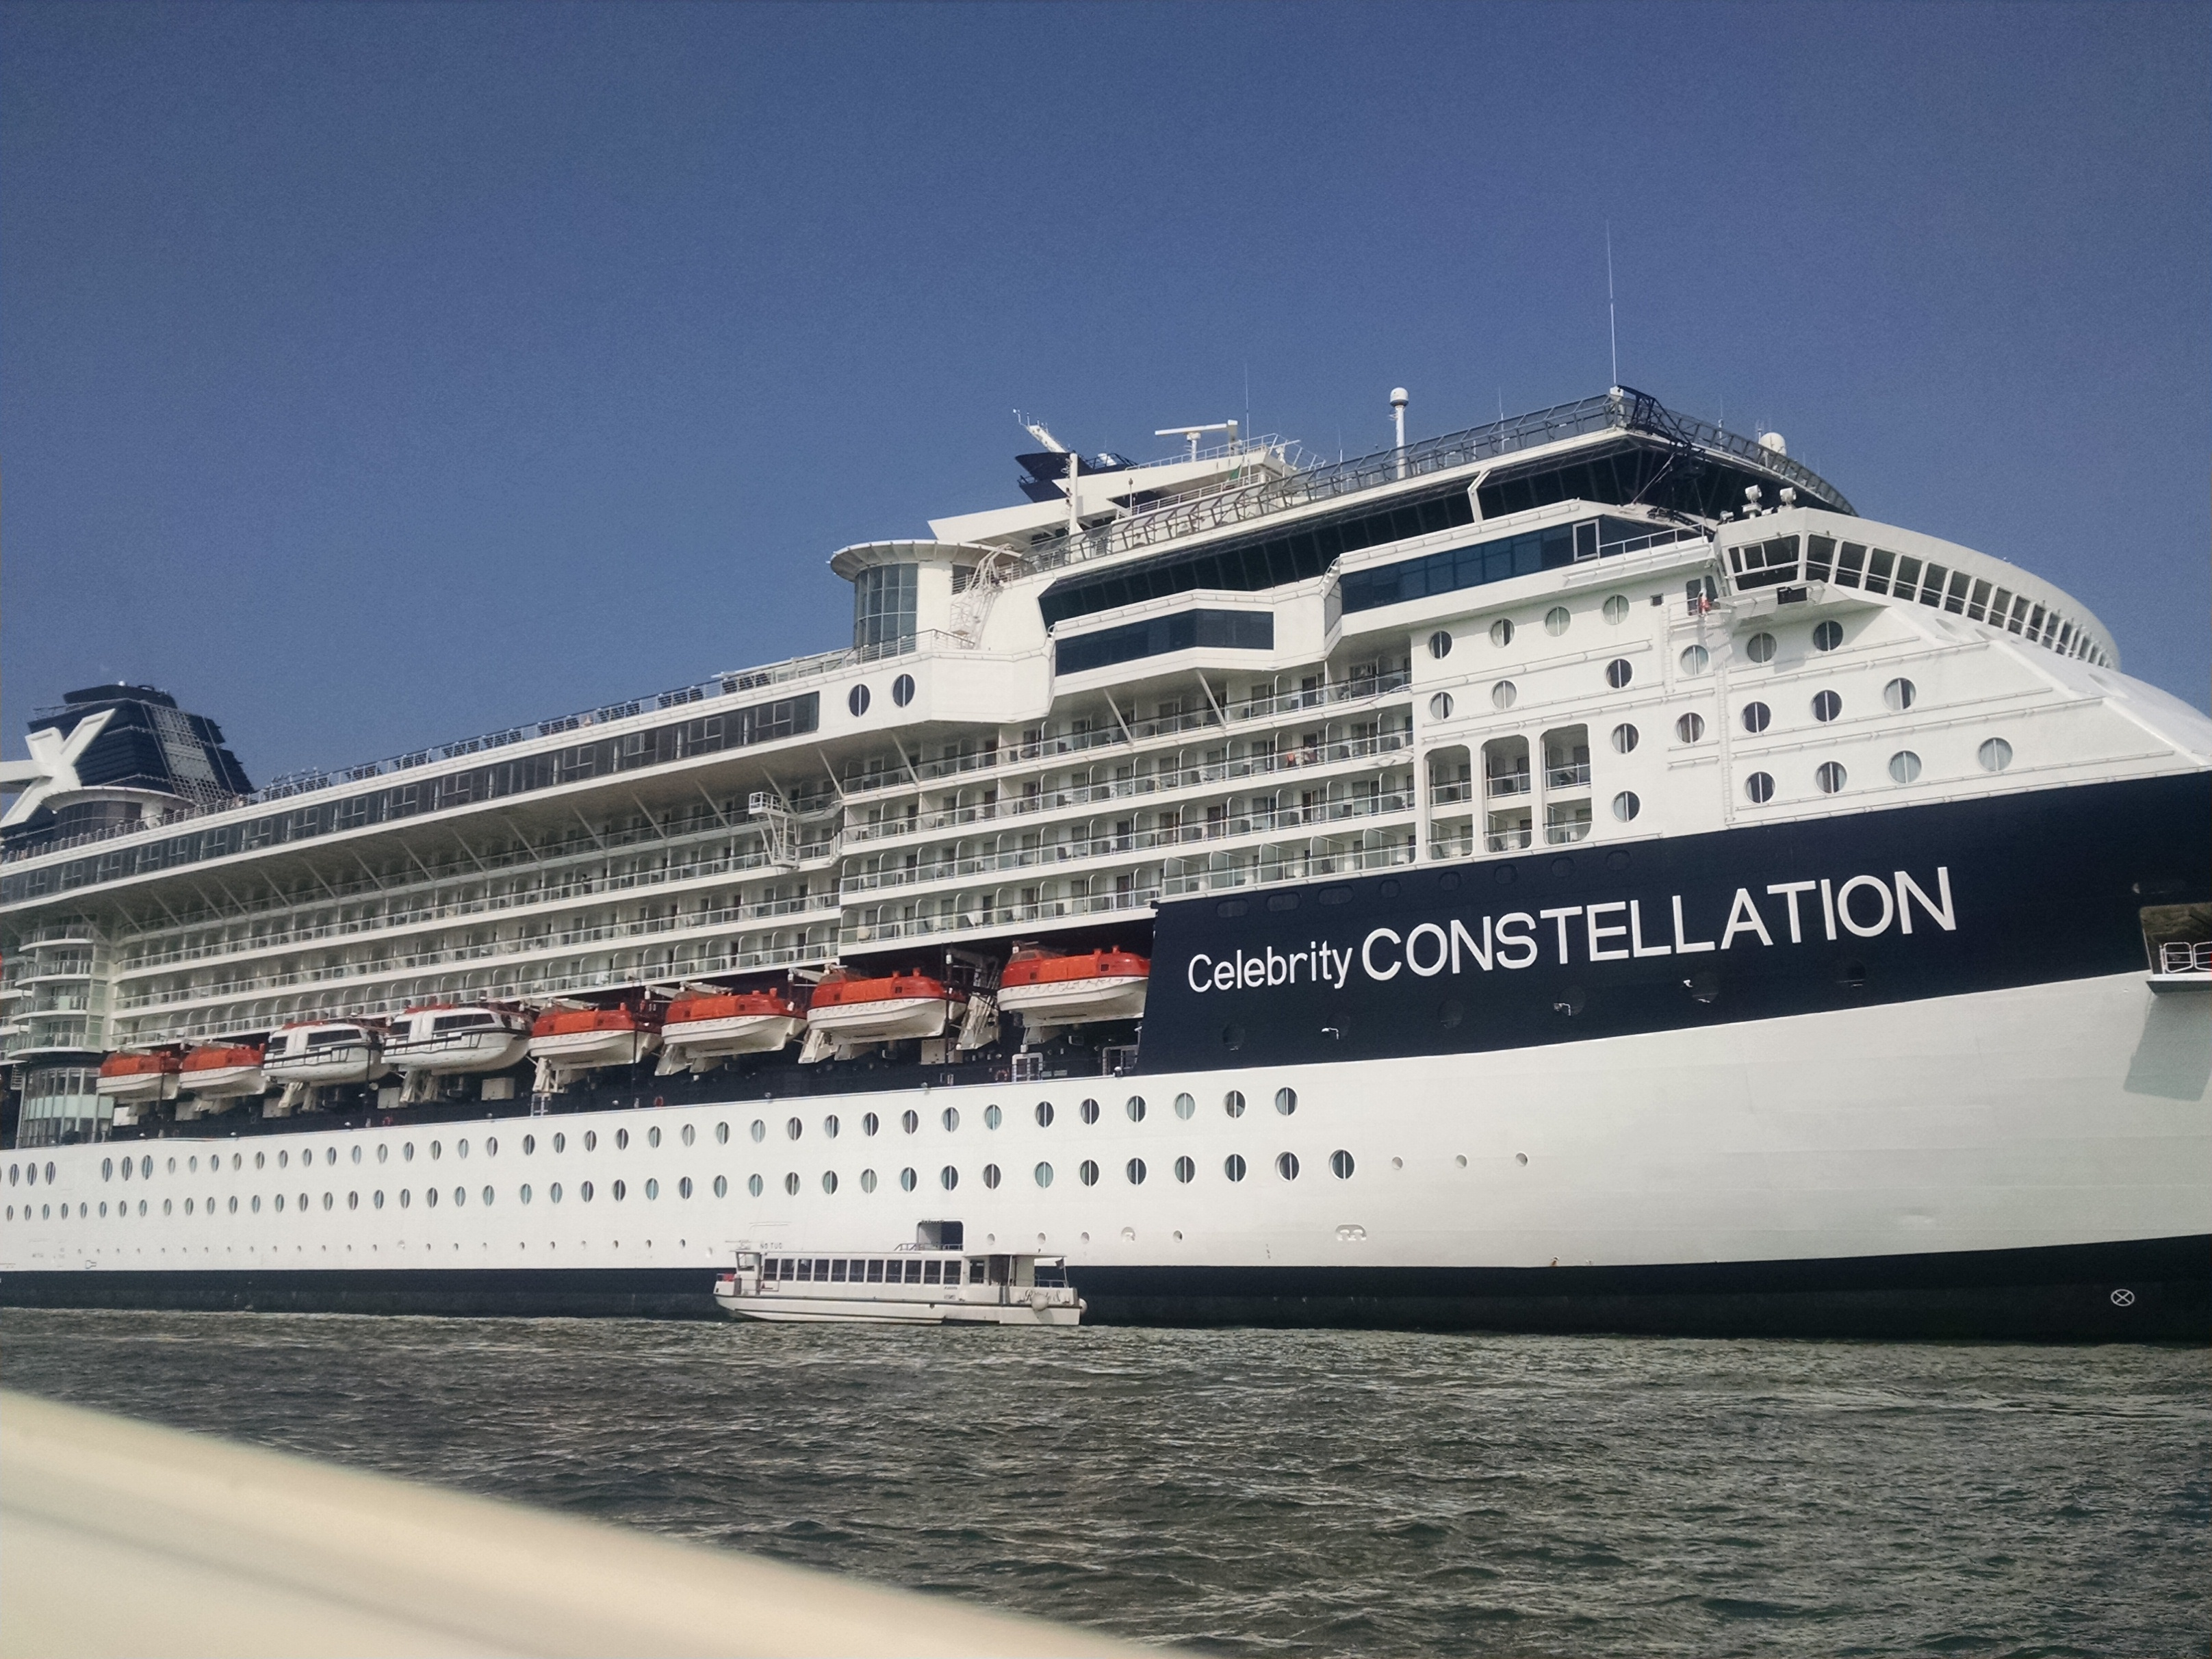 Celebrity Constellation Review | U.S. News Best Cruises